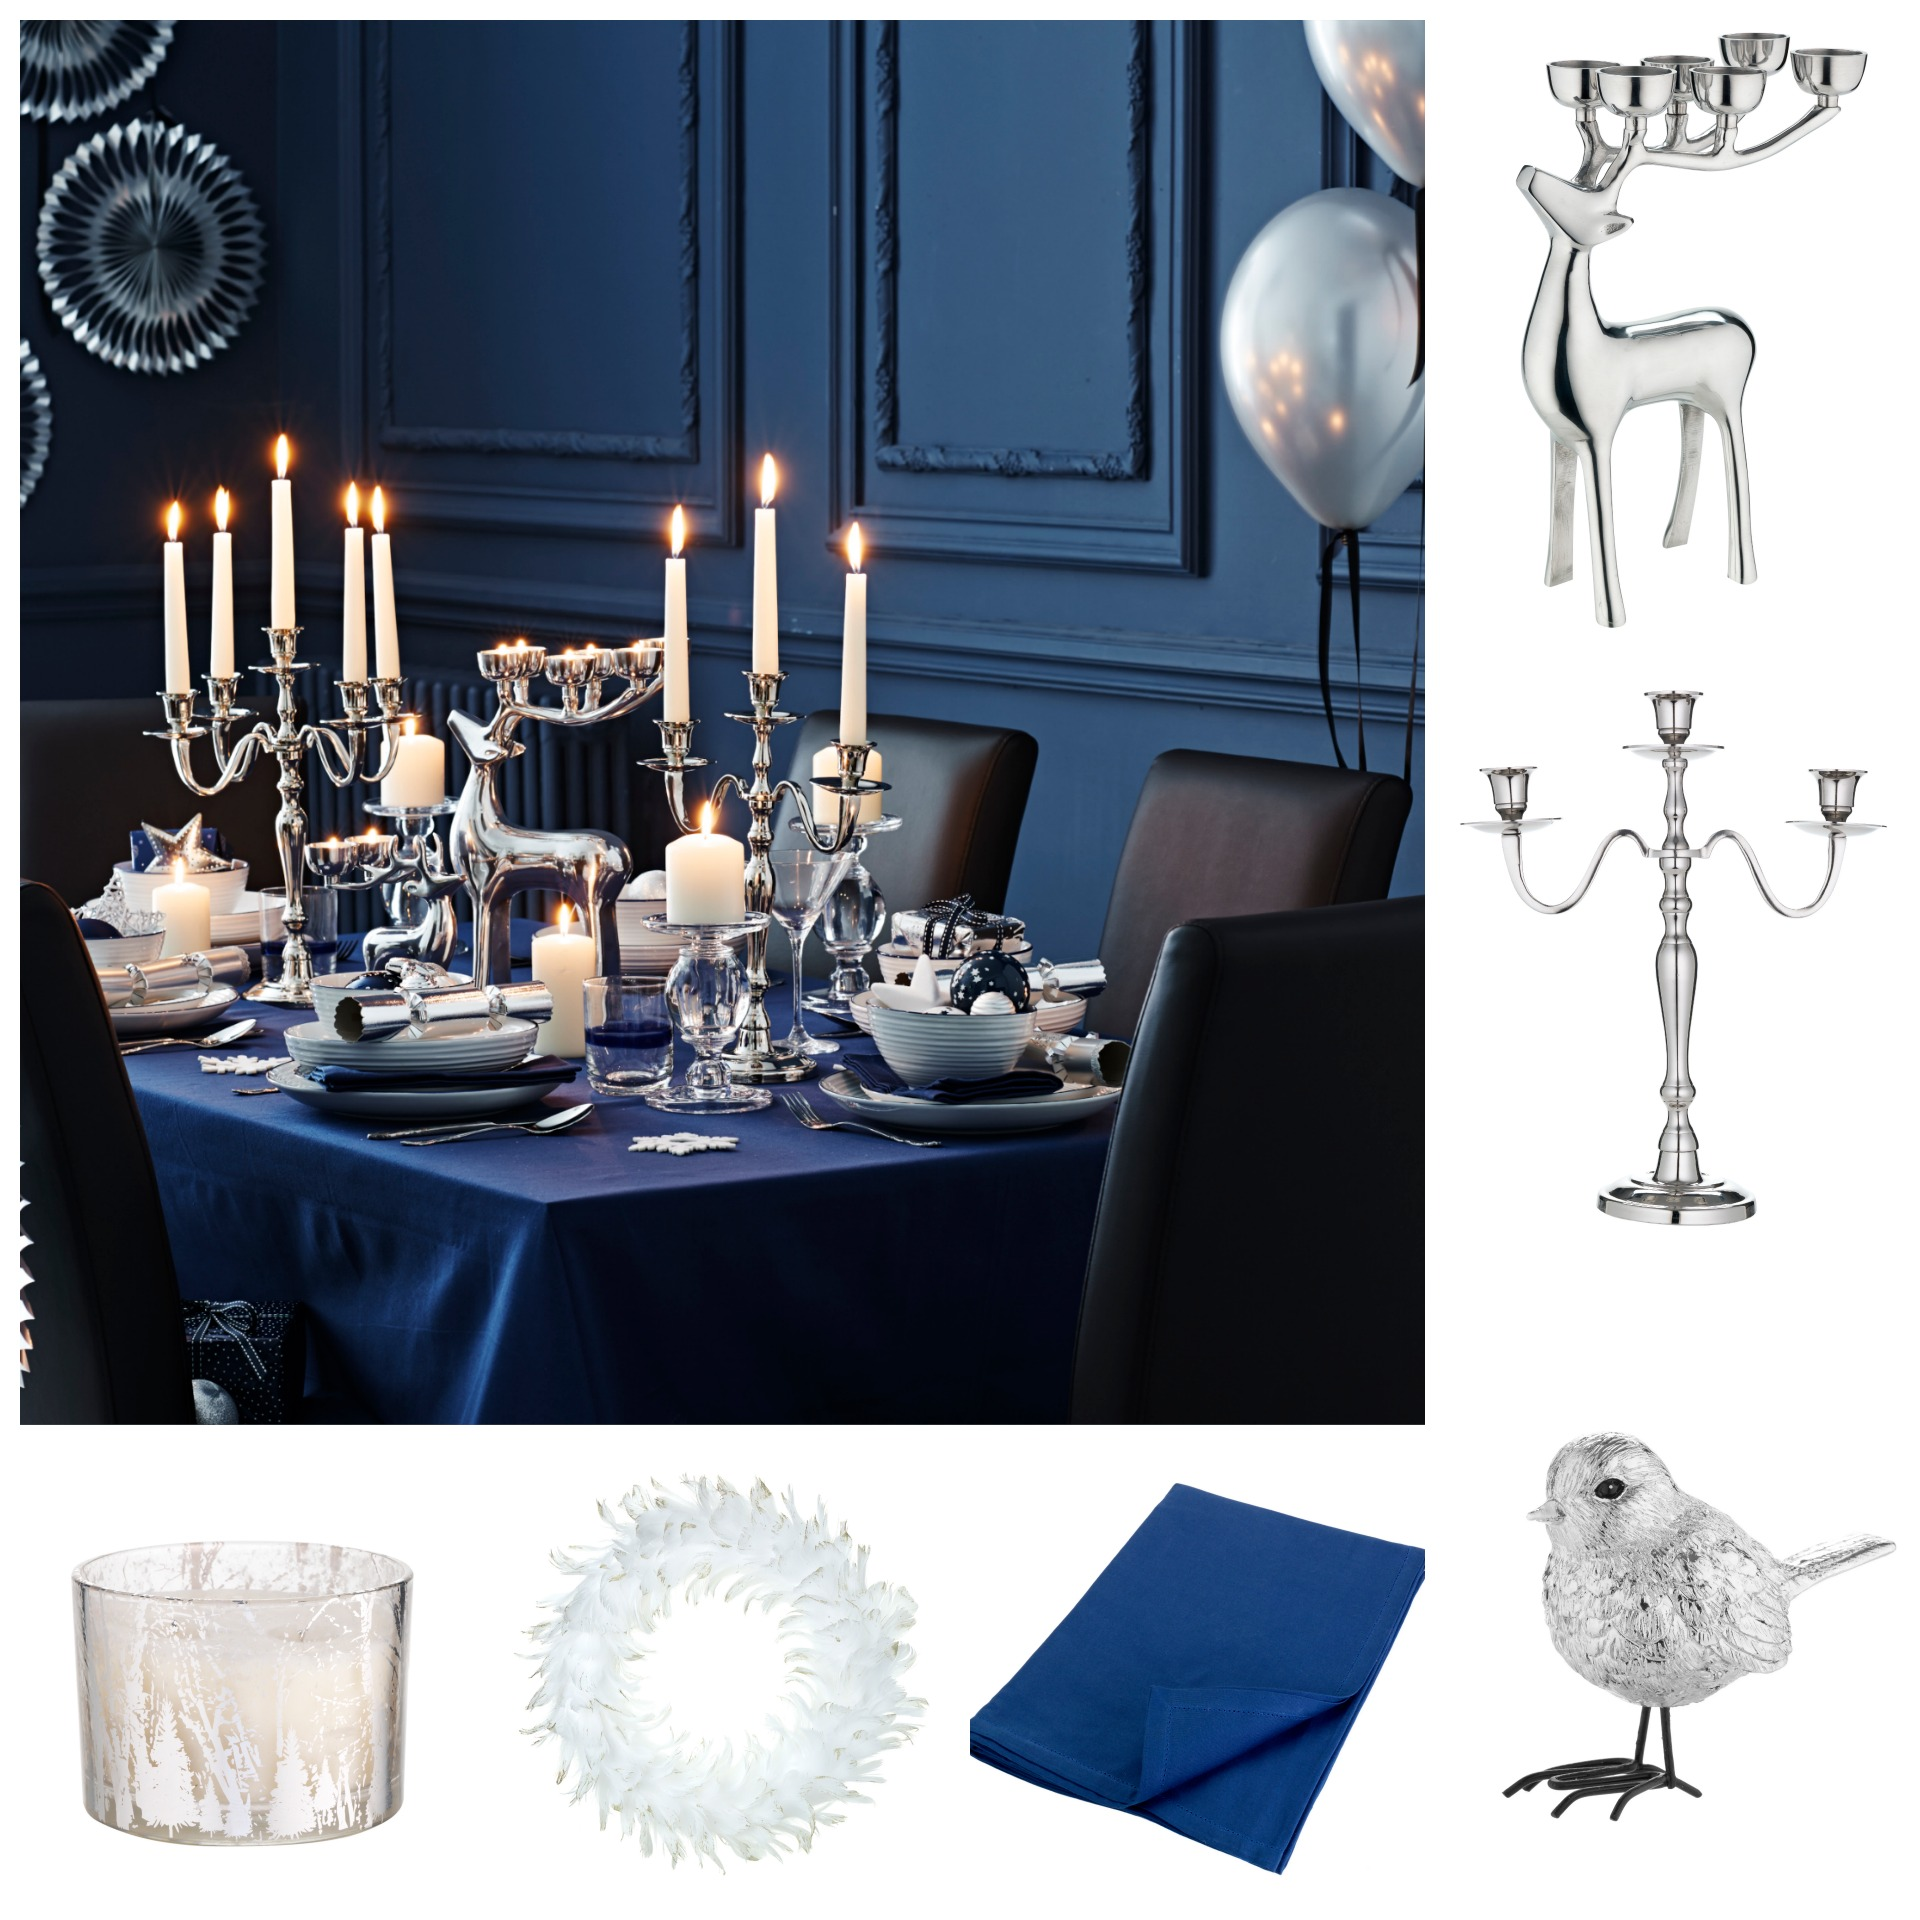 A stylish winter table setting will impress your guests